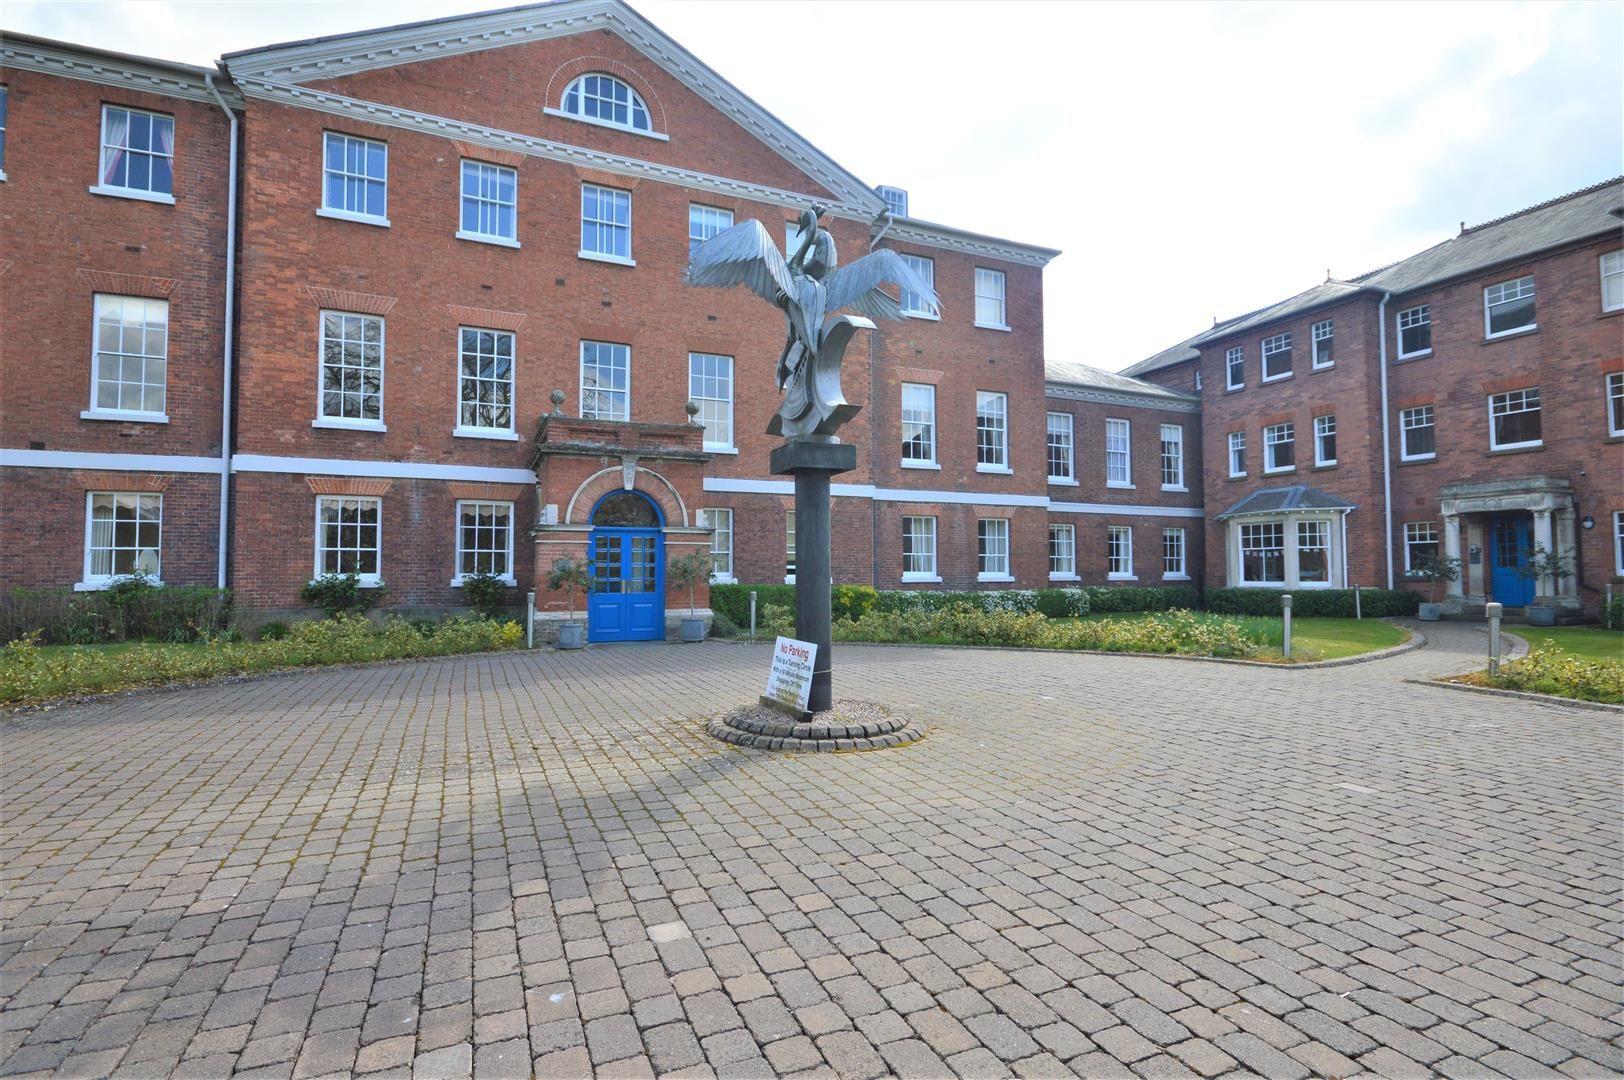 2 bed apartment for sale in Victoria Bridge - Property Image 1